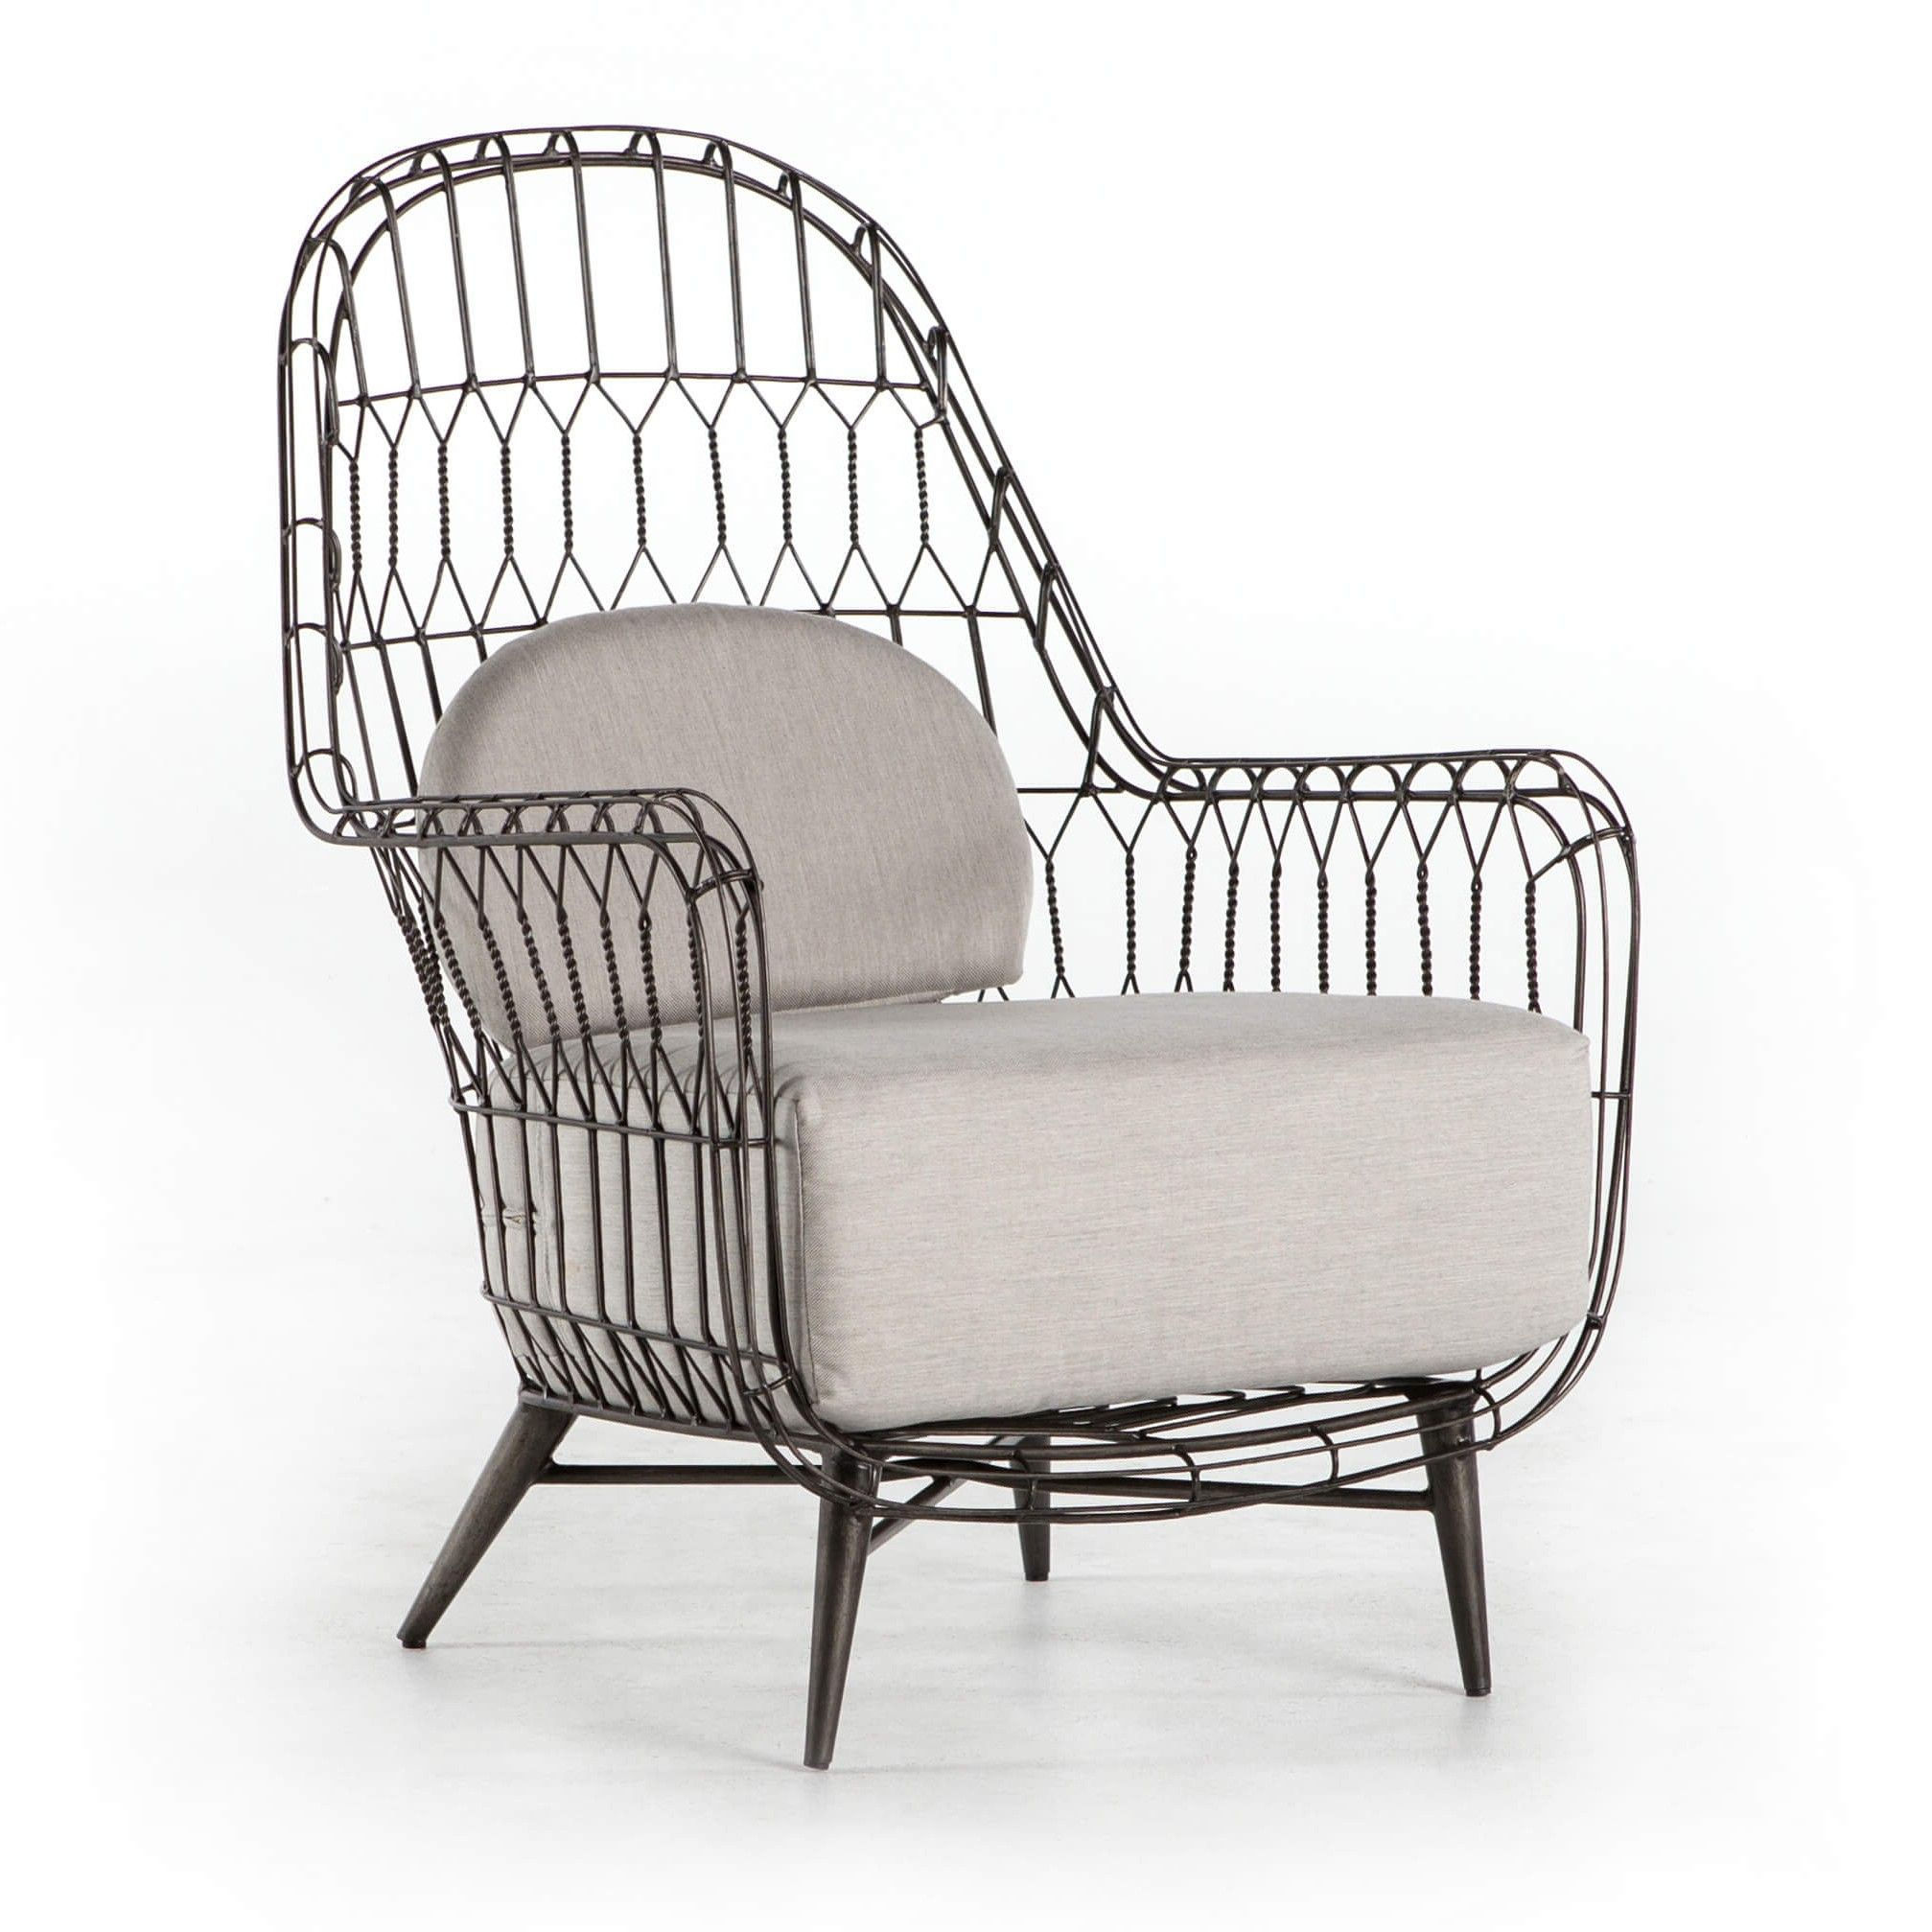 Manten Outdoor Wing Chair Wing Chair Outdoor Glider Chair Lounge Chair Outdoor